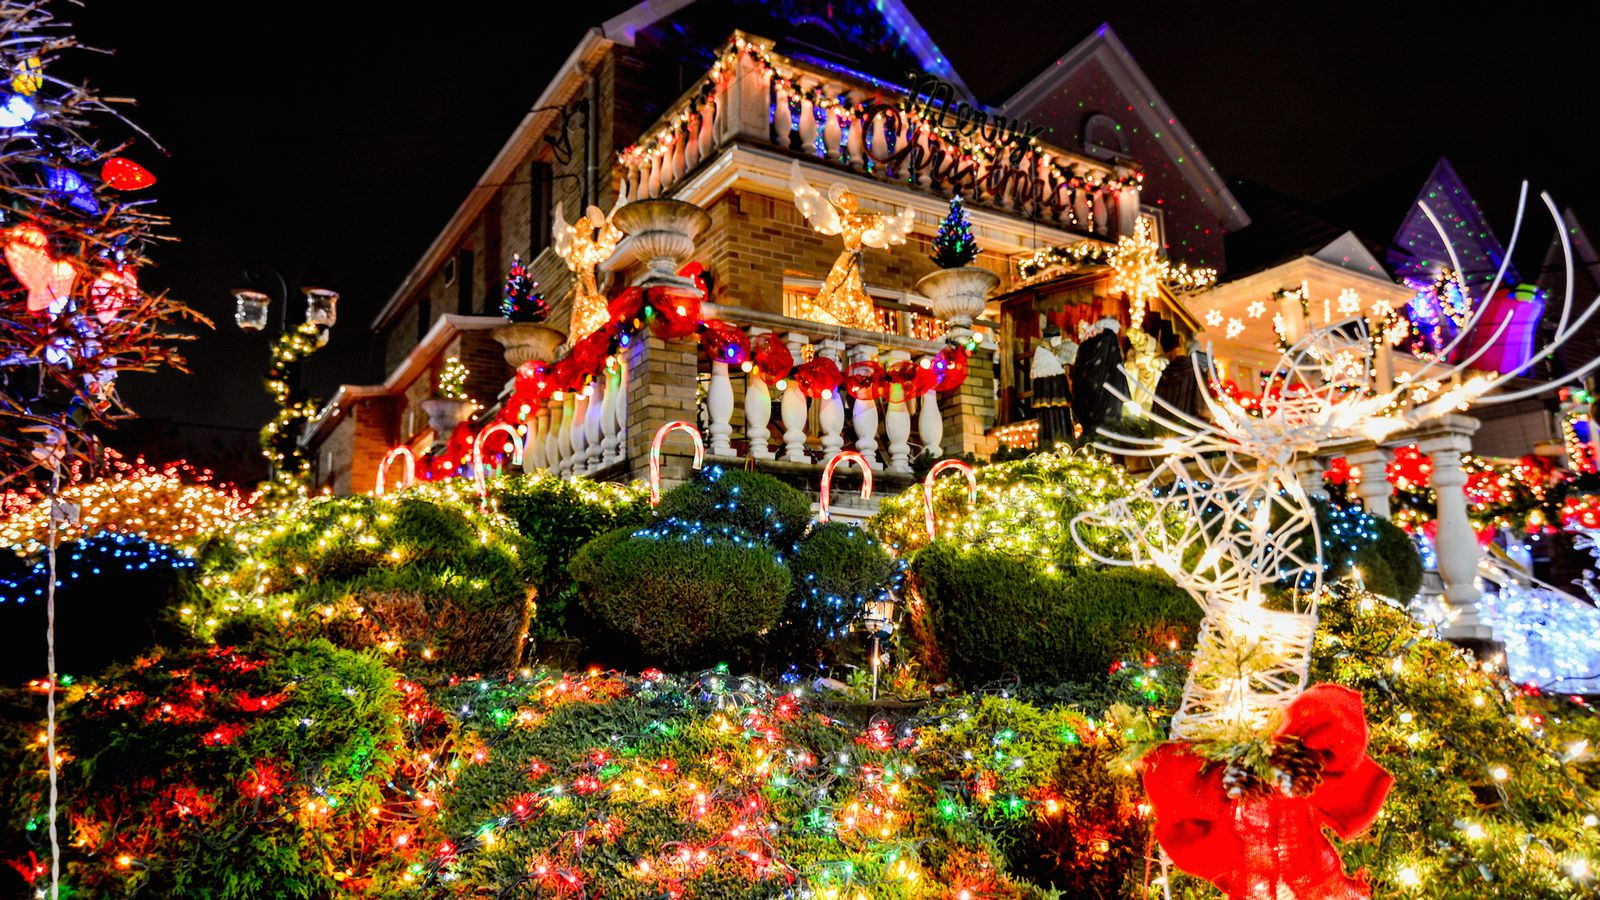 Led Weihnachtsbeleuchtung Außen Open Thread: Which Nyc Neighborhood Has The Best Christmas